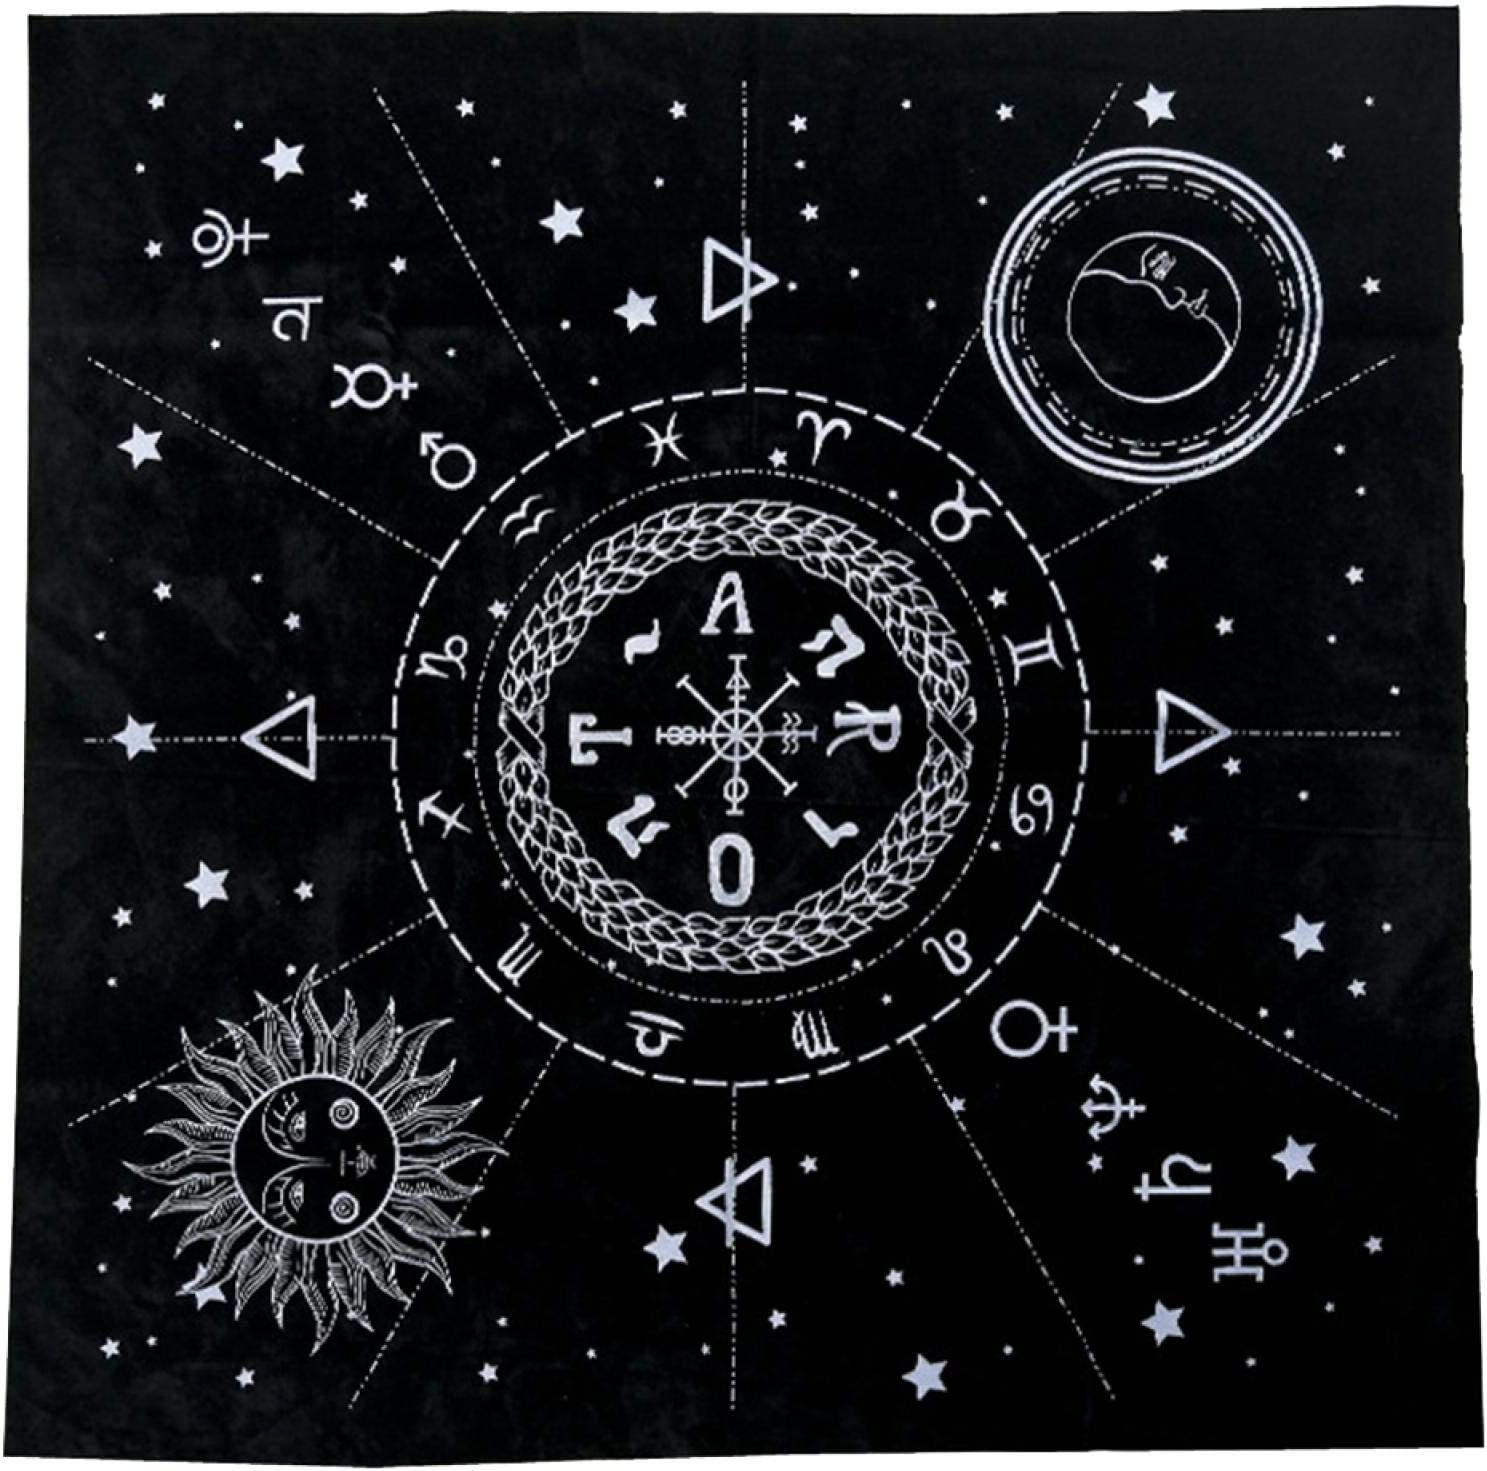 EKDJKK Tarot Max 81% OFF Magic Tablecloth Special price Cards Table Myst Cloth with